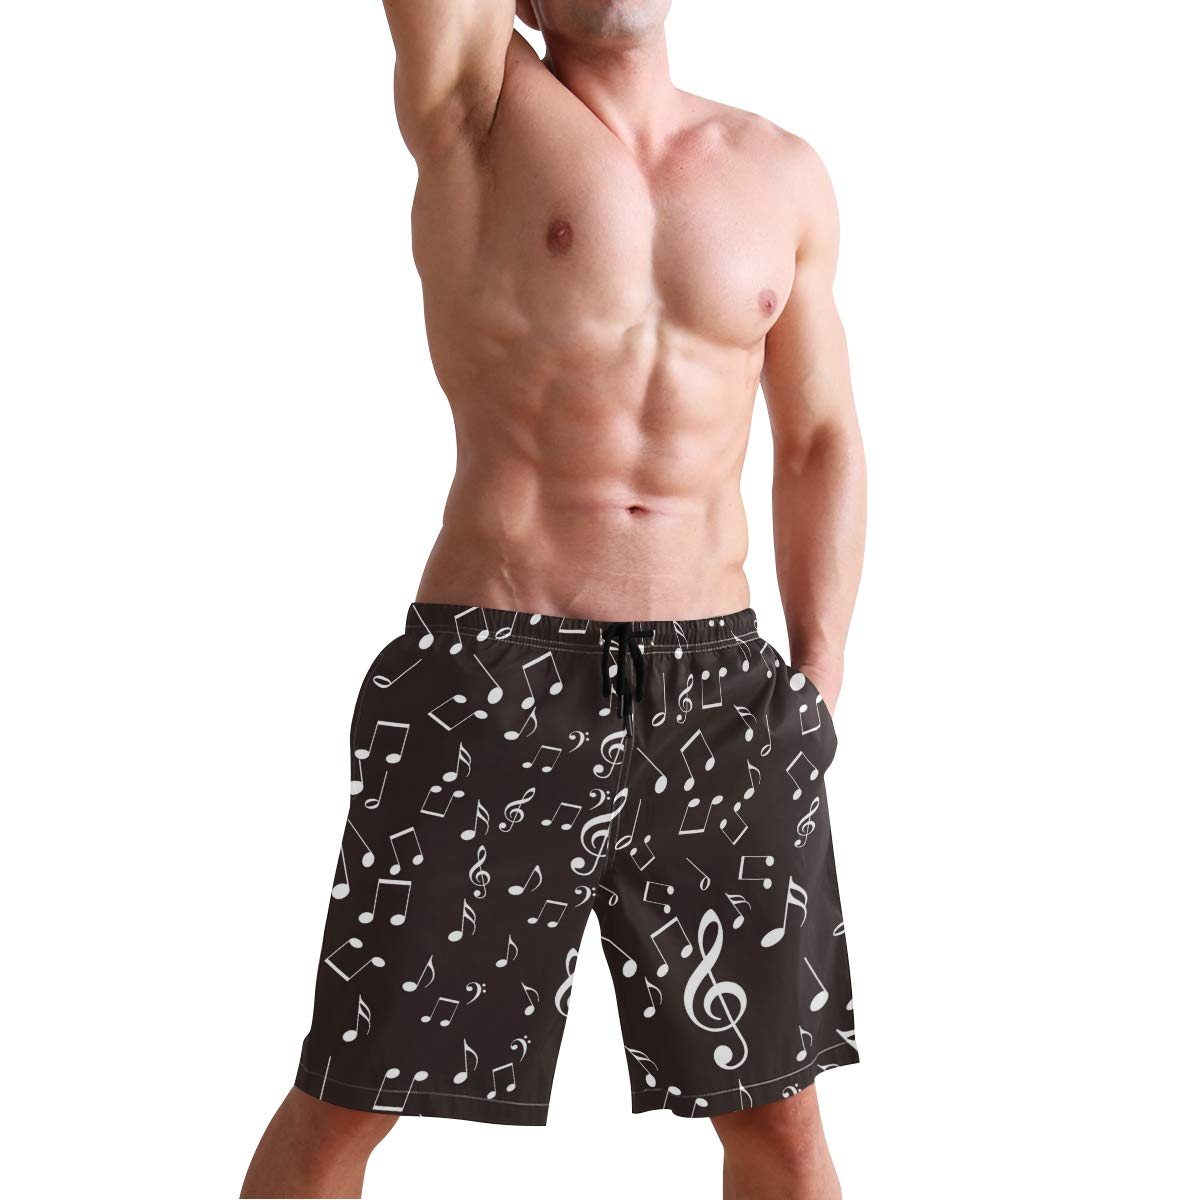 Mens Beach Swim Trunks Music Note Black and White Boxer Swimsuit Underwear Board Shorts with Pocket